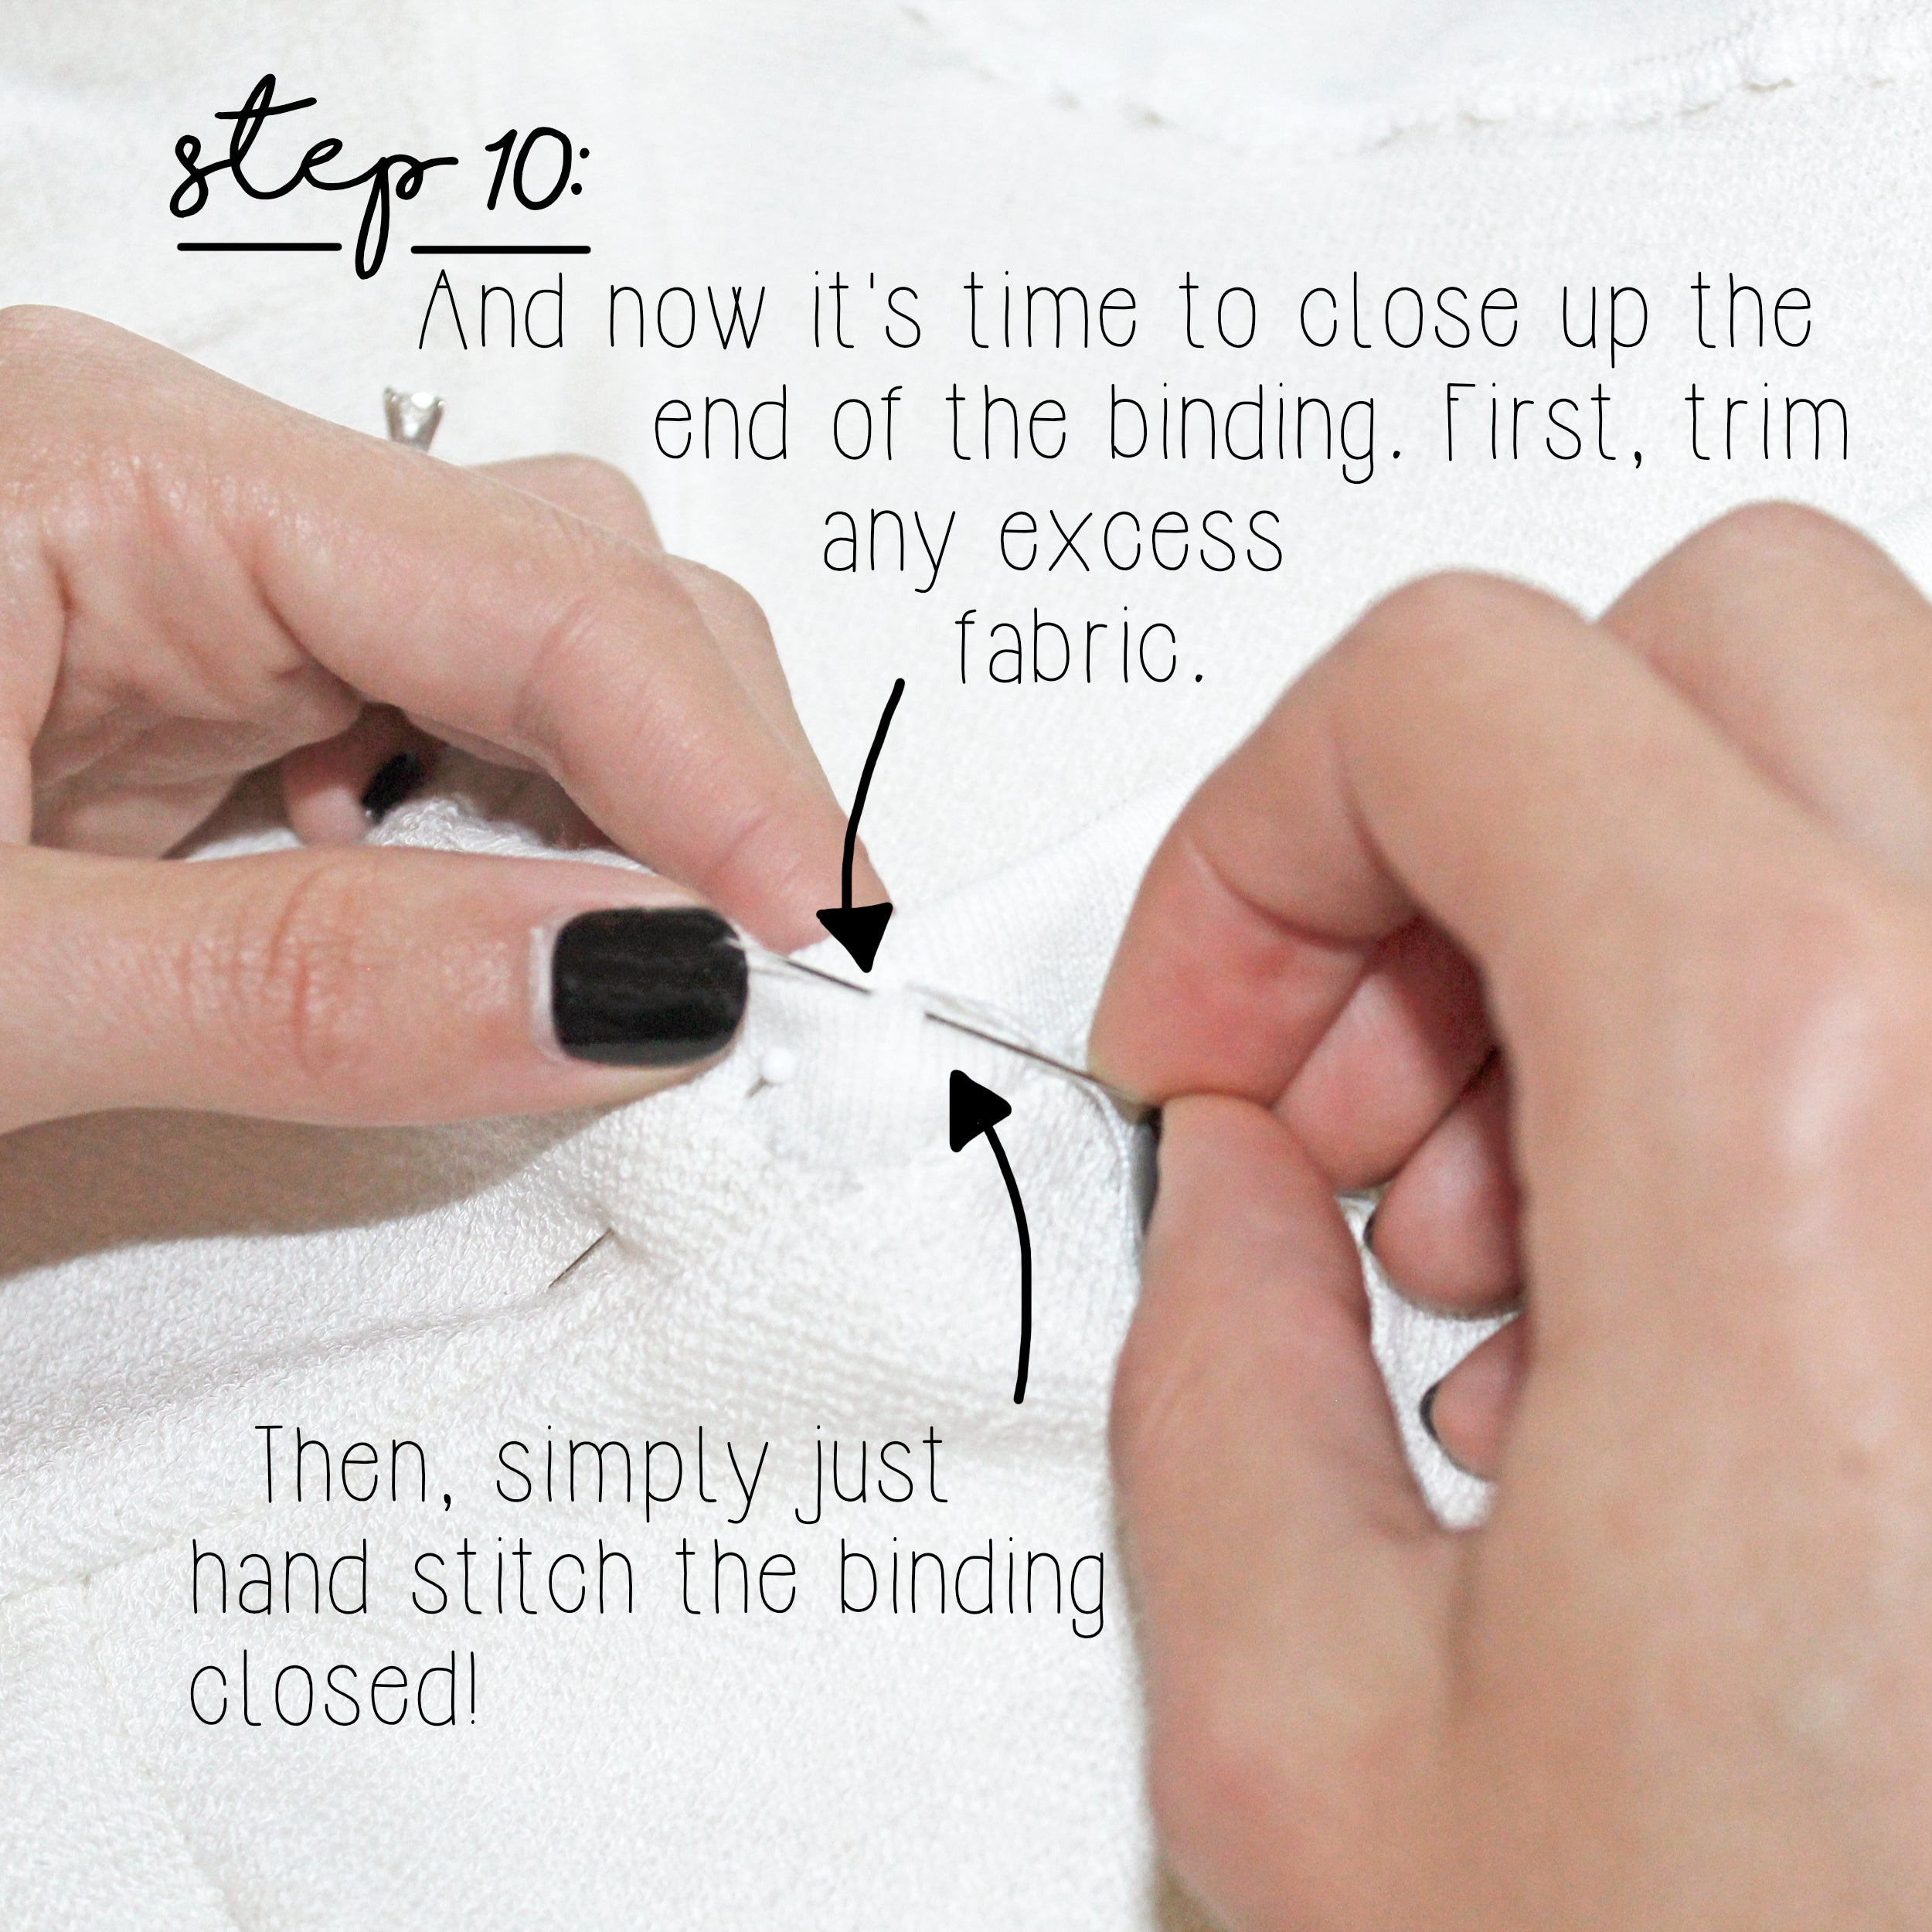 How To Sew A Knit Seam Binding Sewing Tutorial: Step 10